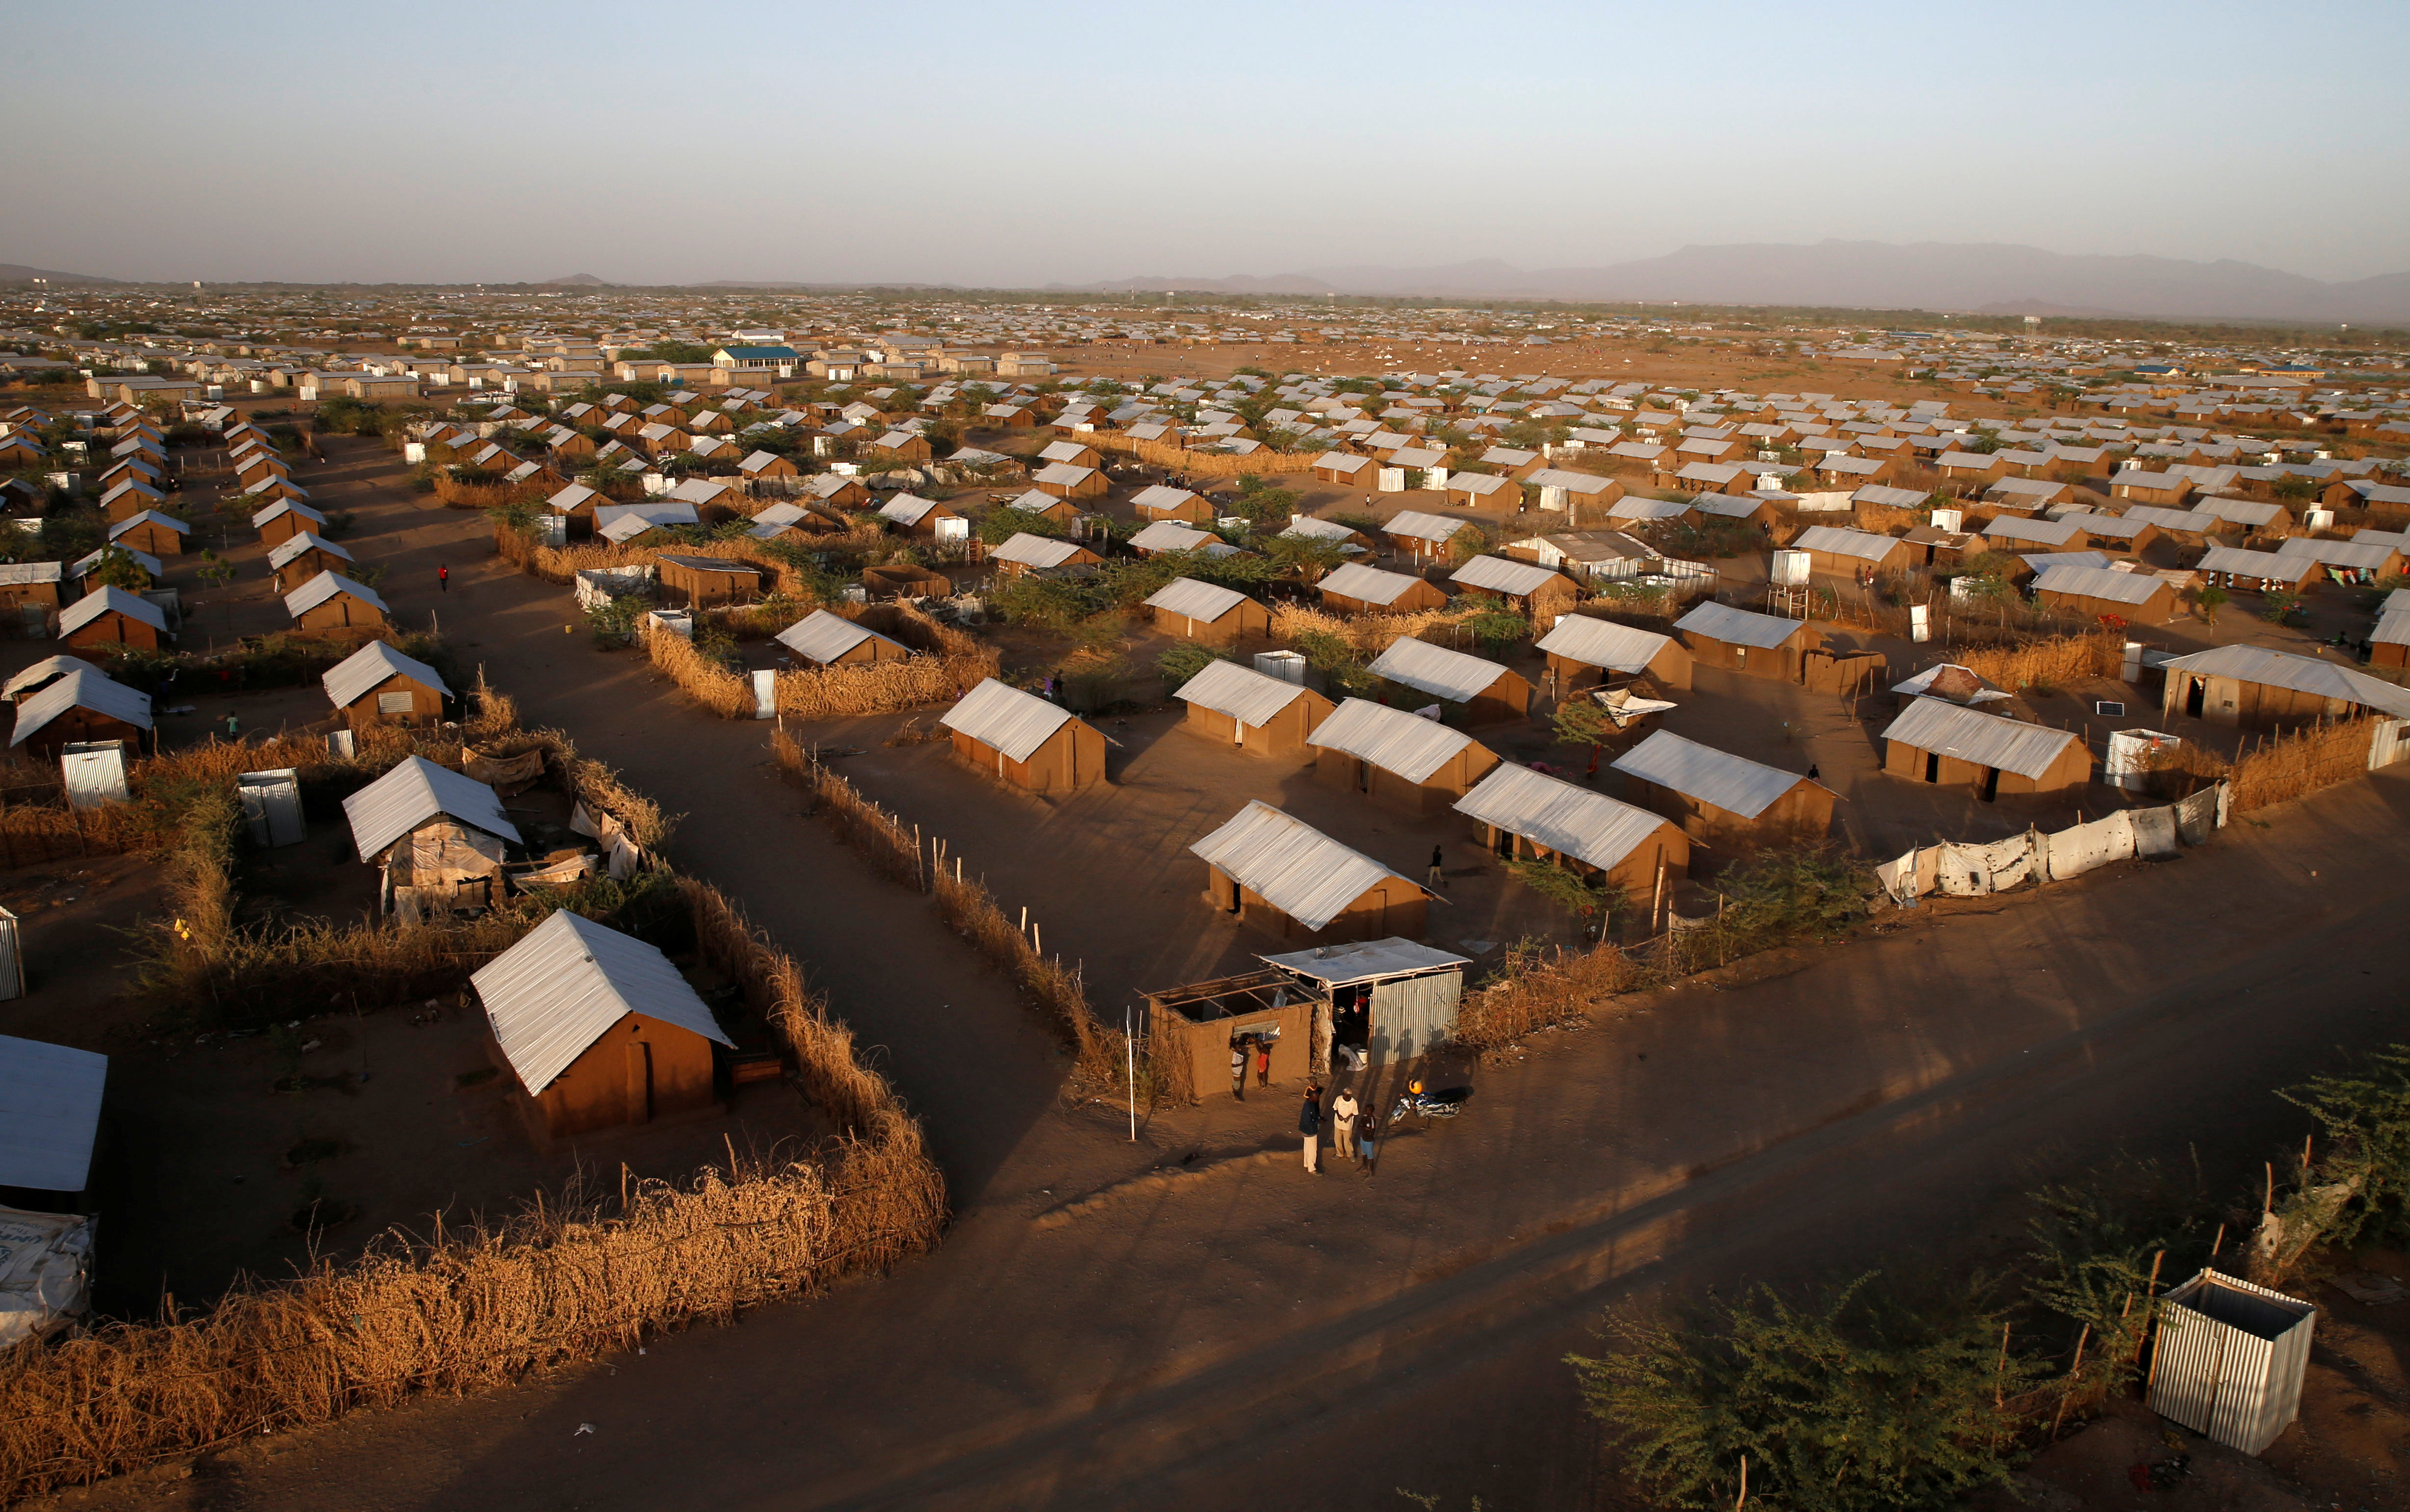 An aerial view shows recently constructed houses at the Kakuma refugee camp in Turkana county, northwest of Nairobi, Kenya, January 31, 2018. REUTERS/Thomas Mukoya